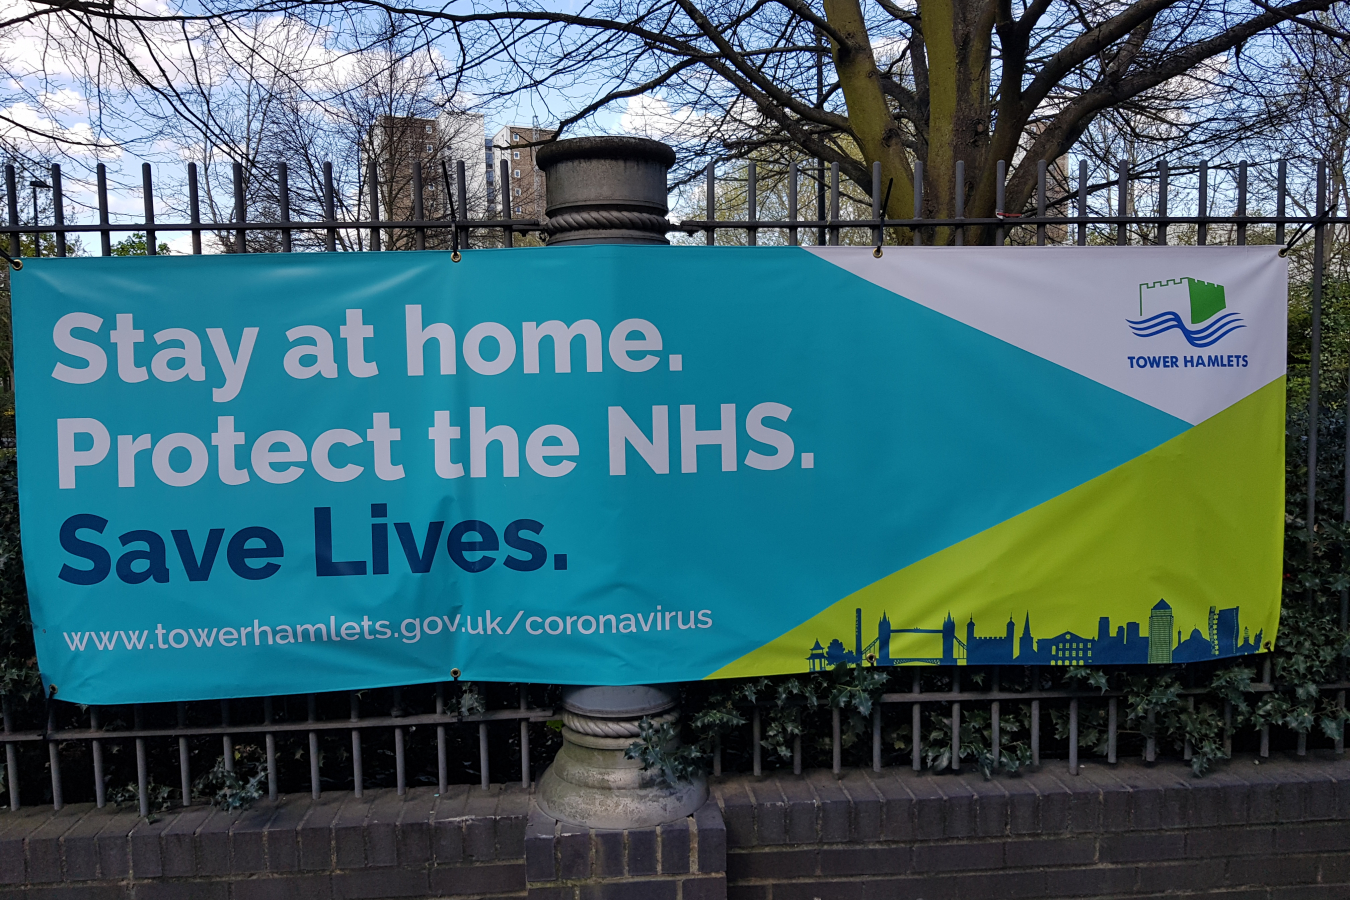 Stay at Home Protect the NHS sign, near Canary Wharf, London